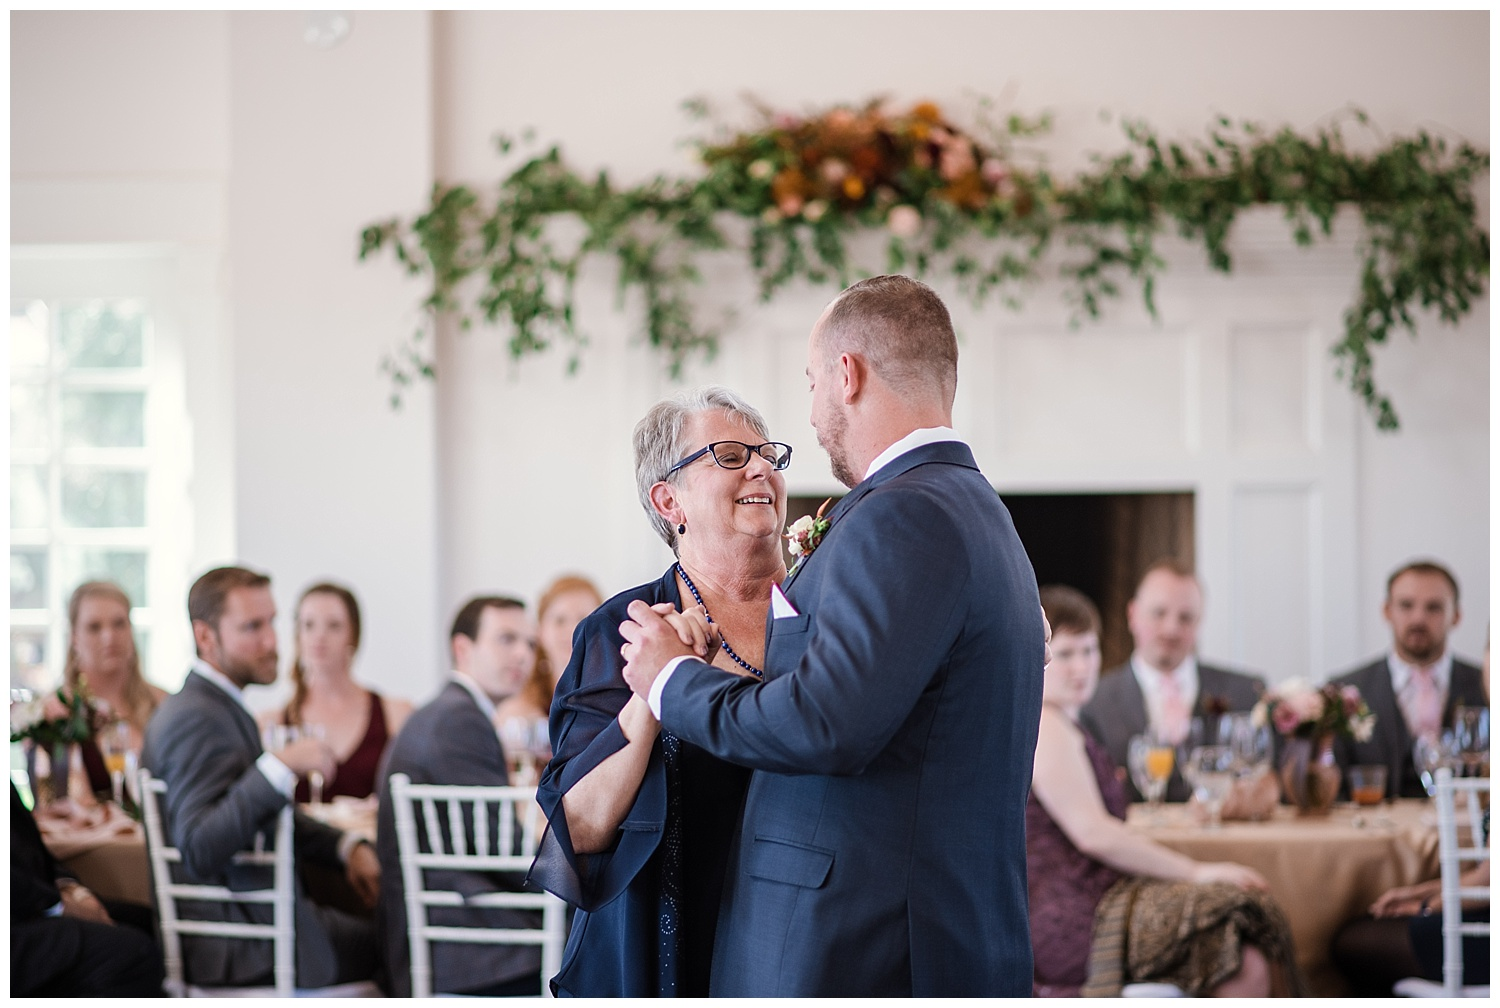 wedding reception at the Manor House, Rocky Mountain Wedding Photographer, Colorado Wedding Photographer, Denver Wedding Photographer, Colorado Intimate Elopement Photographer, Downtown Denver Photographer, Rocky Mountain Adventure Elopement,